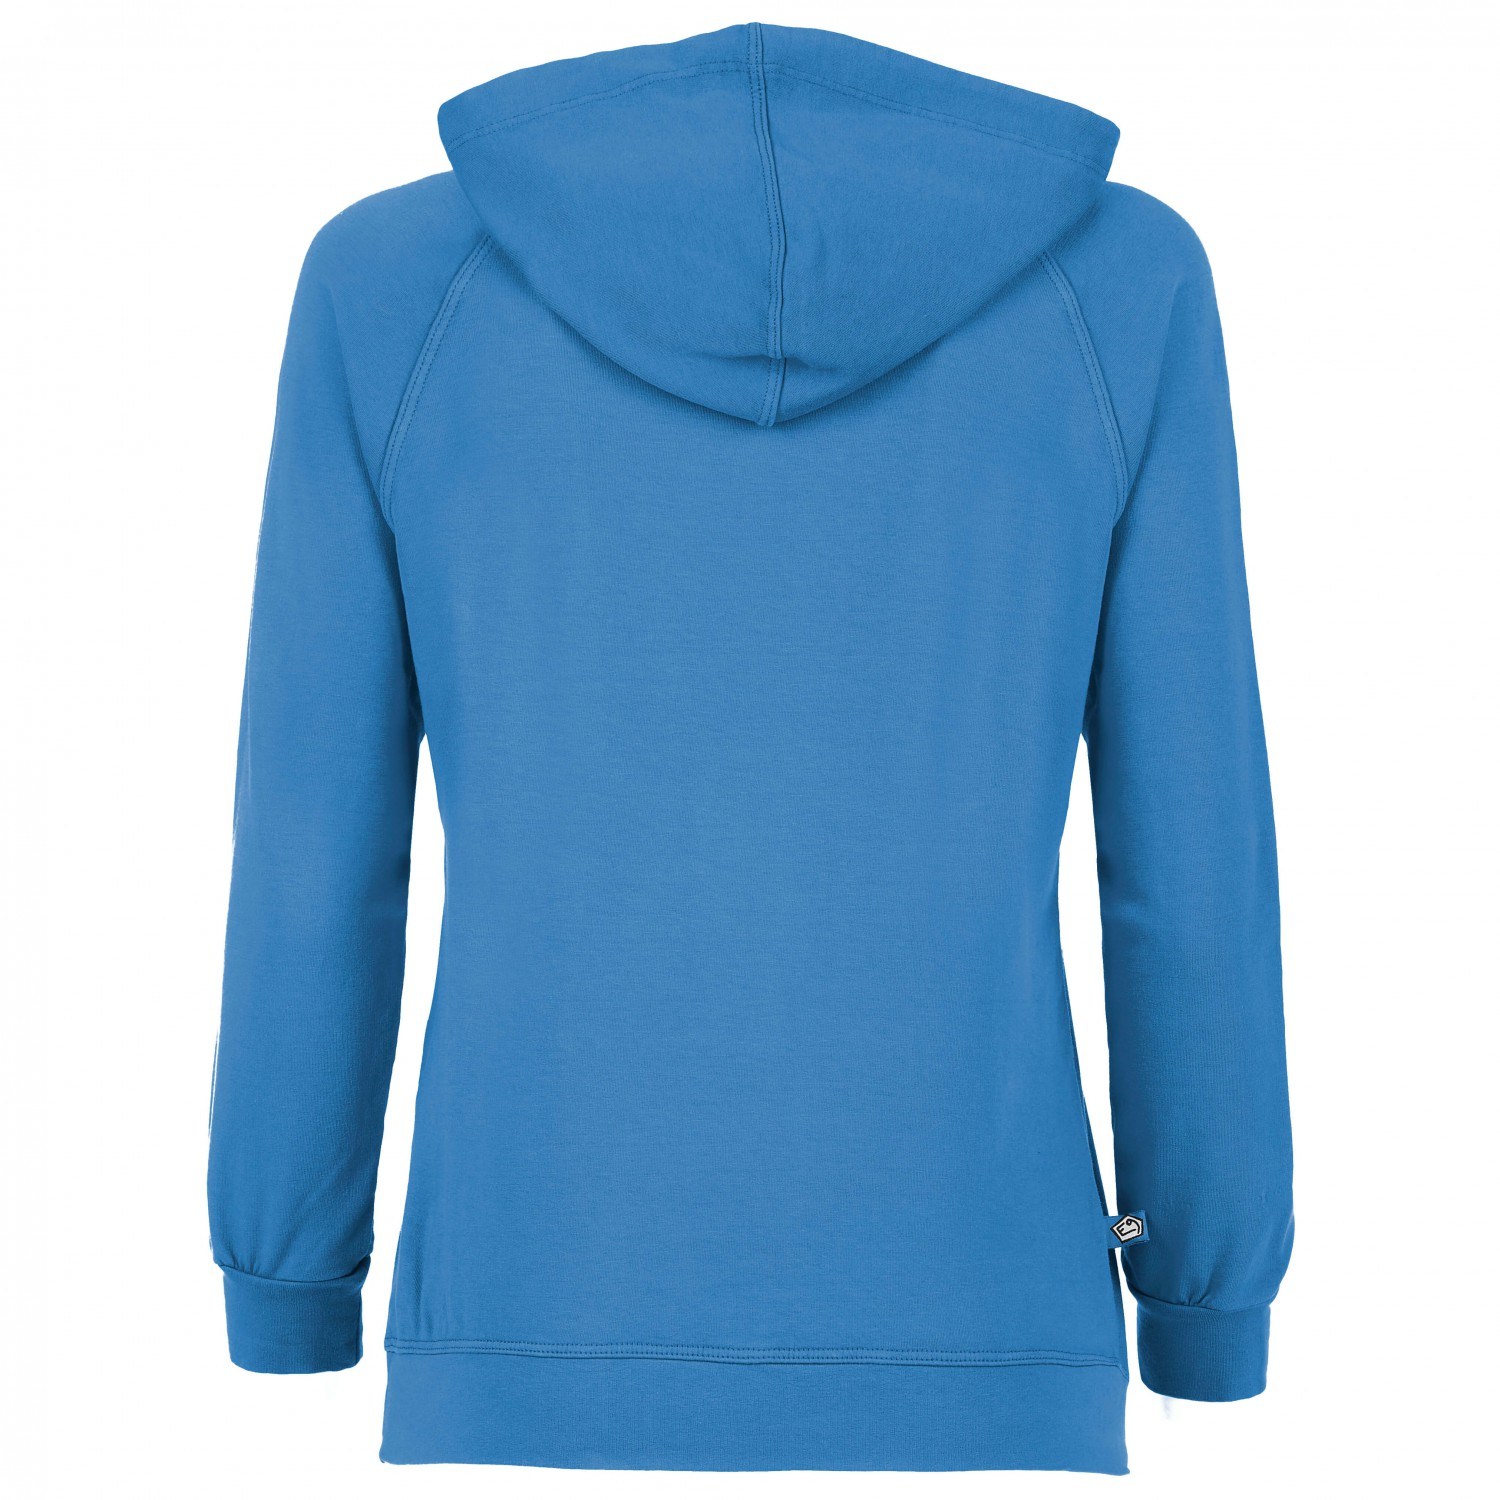 Shop adidas Kids Youth Hoodies Sweatshirts on nakedprogrammzce.cf Browse all products, from shoes to clothing and accessories in this collection. Find all available syles and colors of Youth Hoodies Sweatshirts in the official adidas online store.